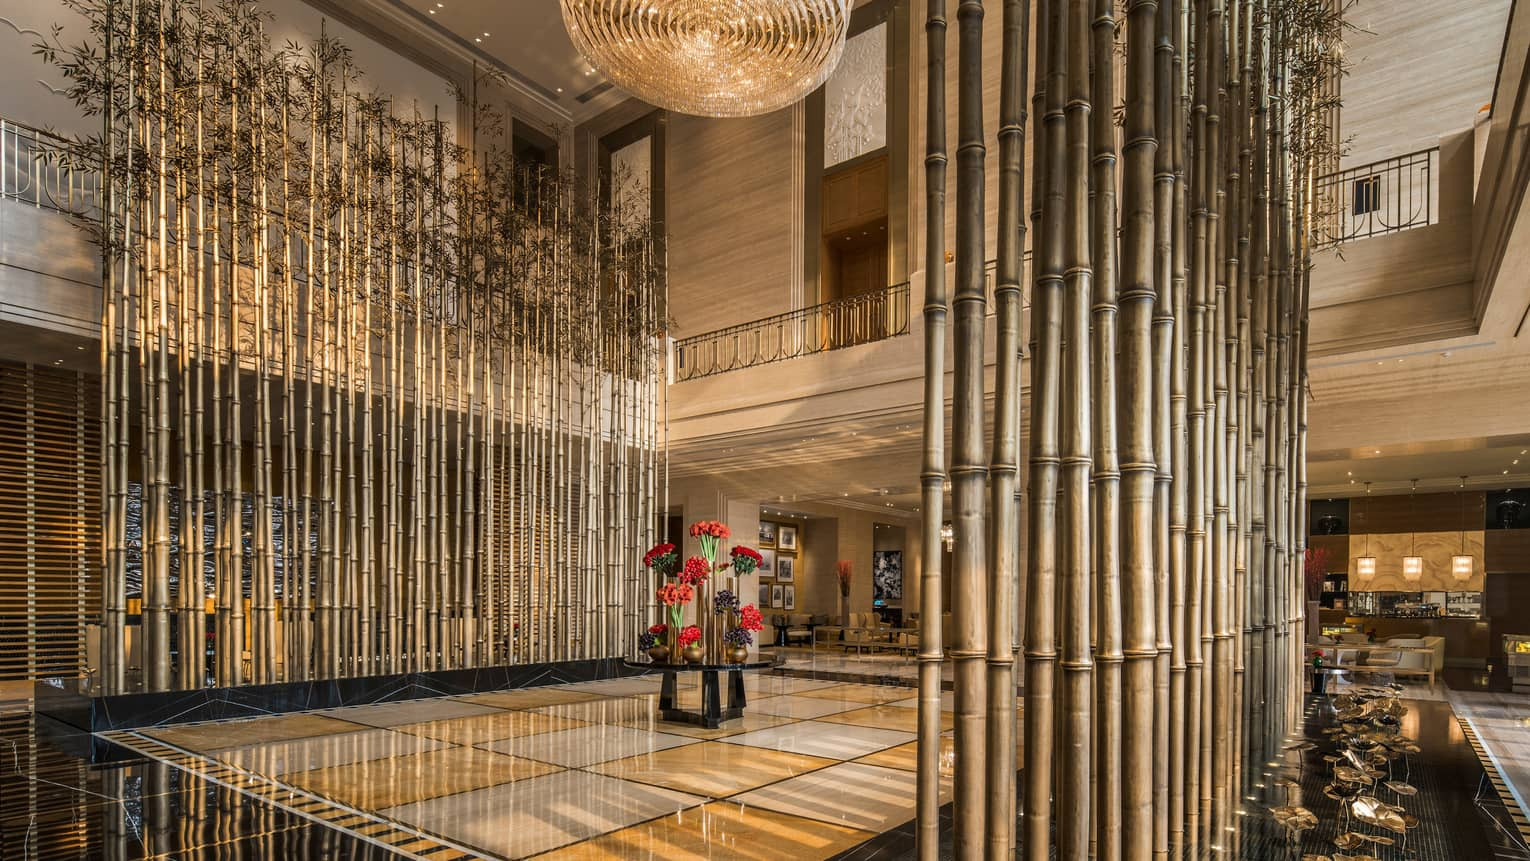 Tall bamboo sticks, leaves above Four Seasons Hotel Tianjin lobby, flowers, tile floor